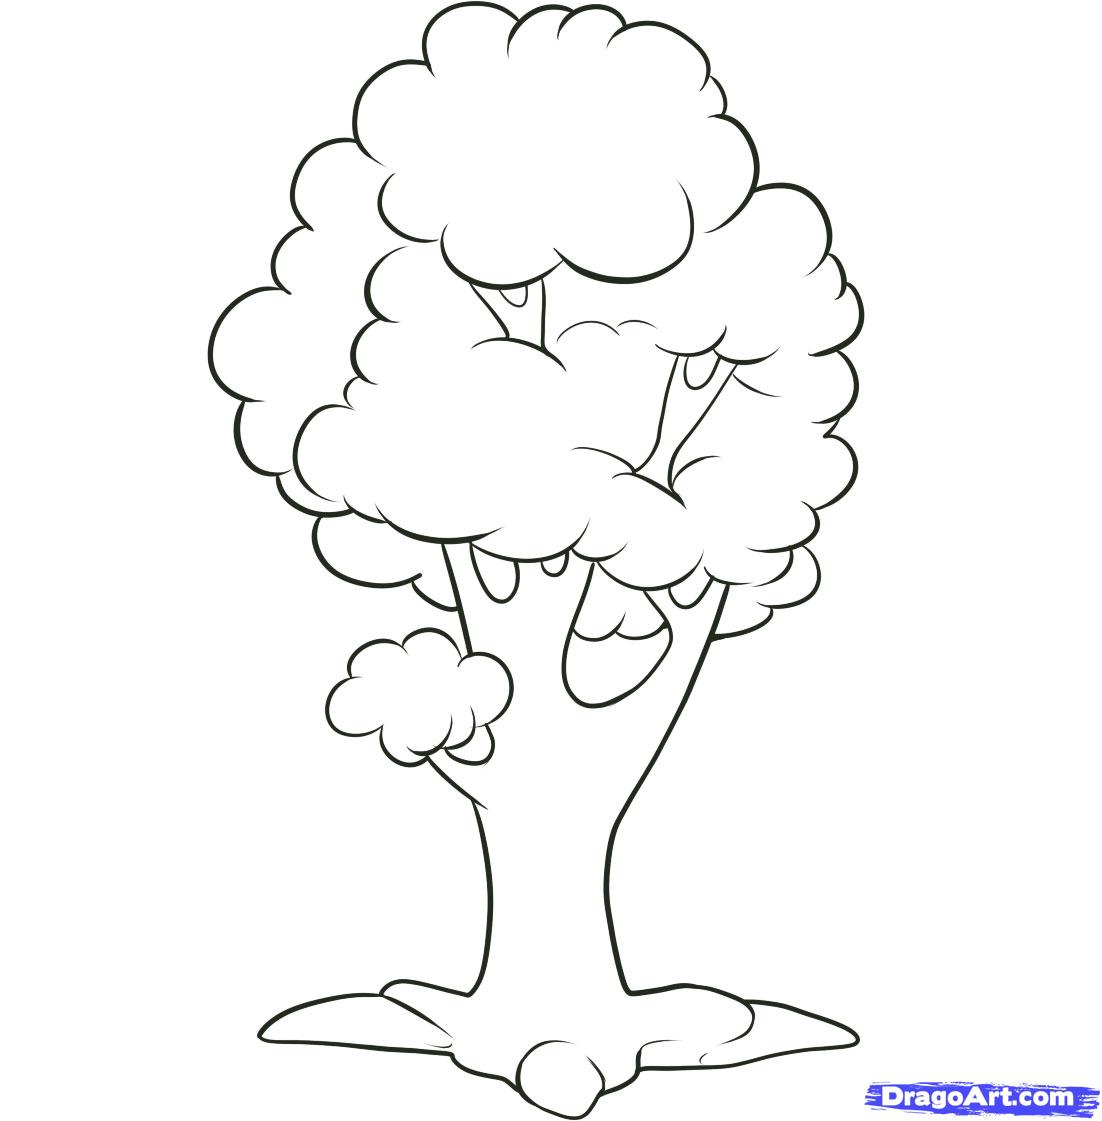 Free Simple Tree Drawings, Download Free Clip Art, Free Clip.